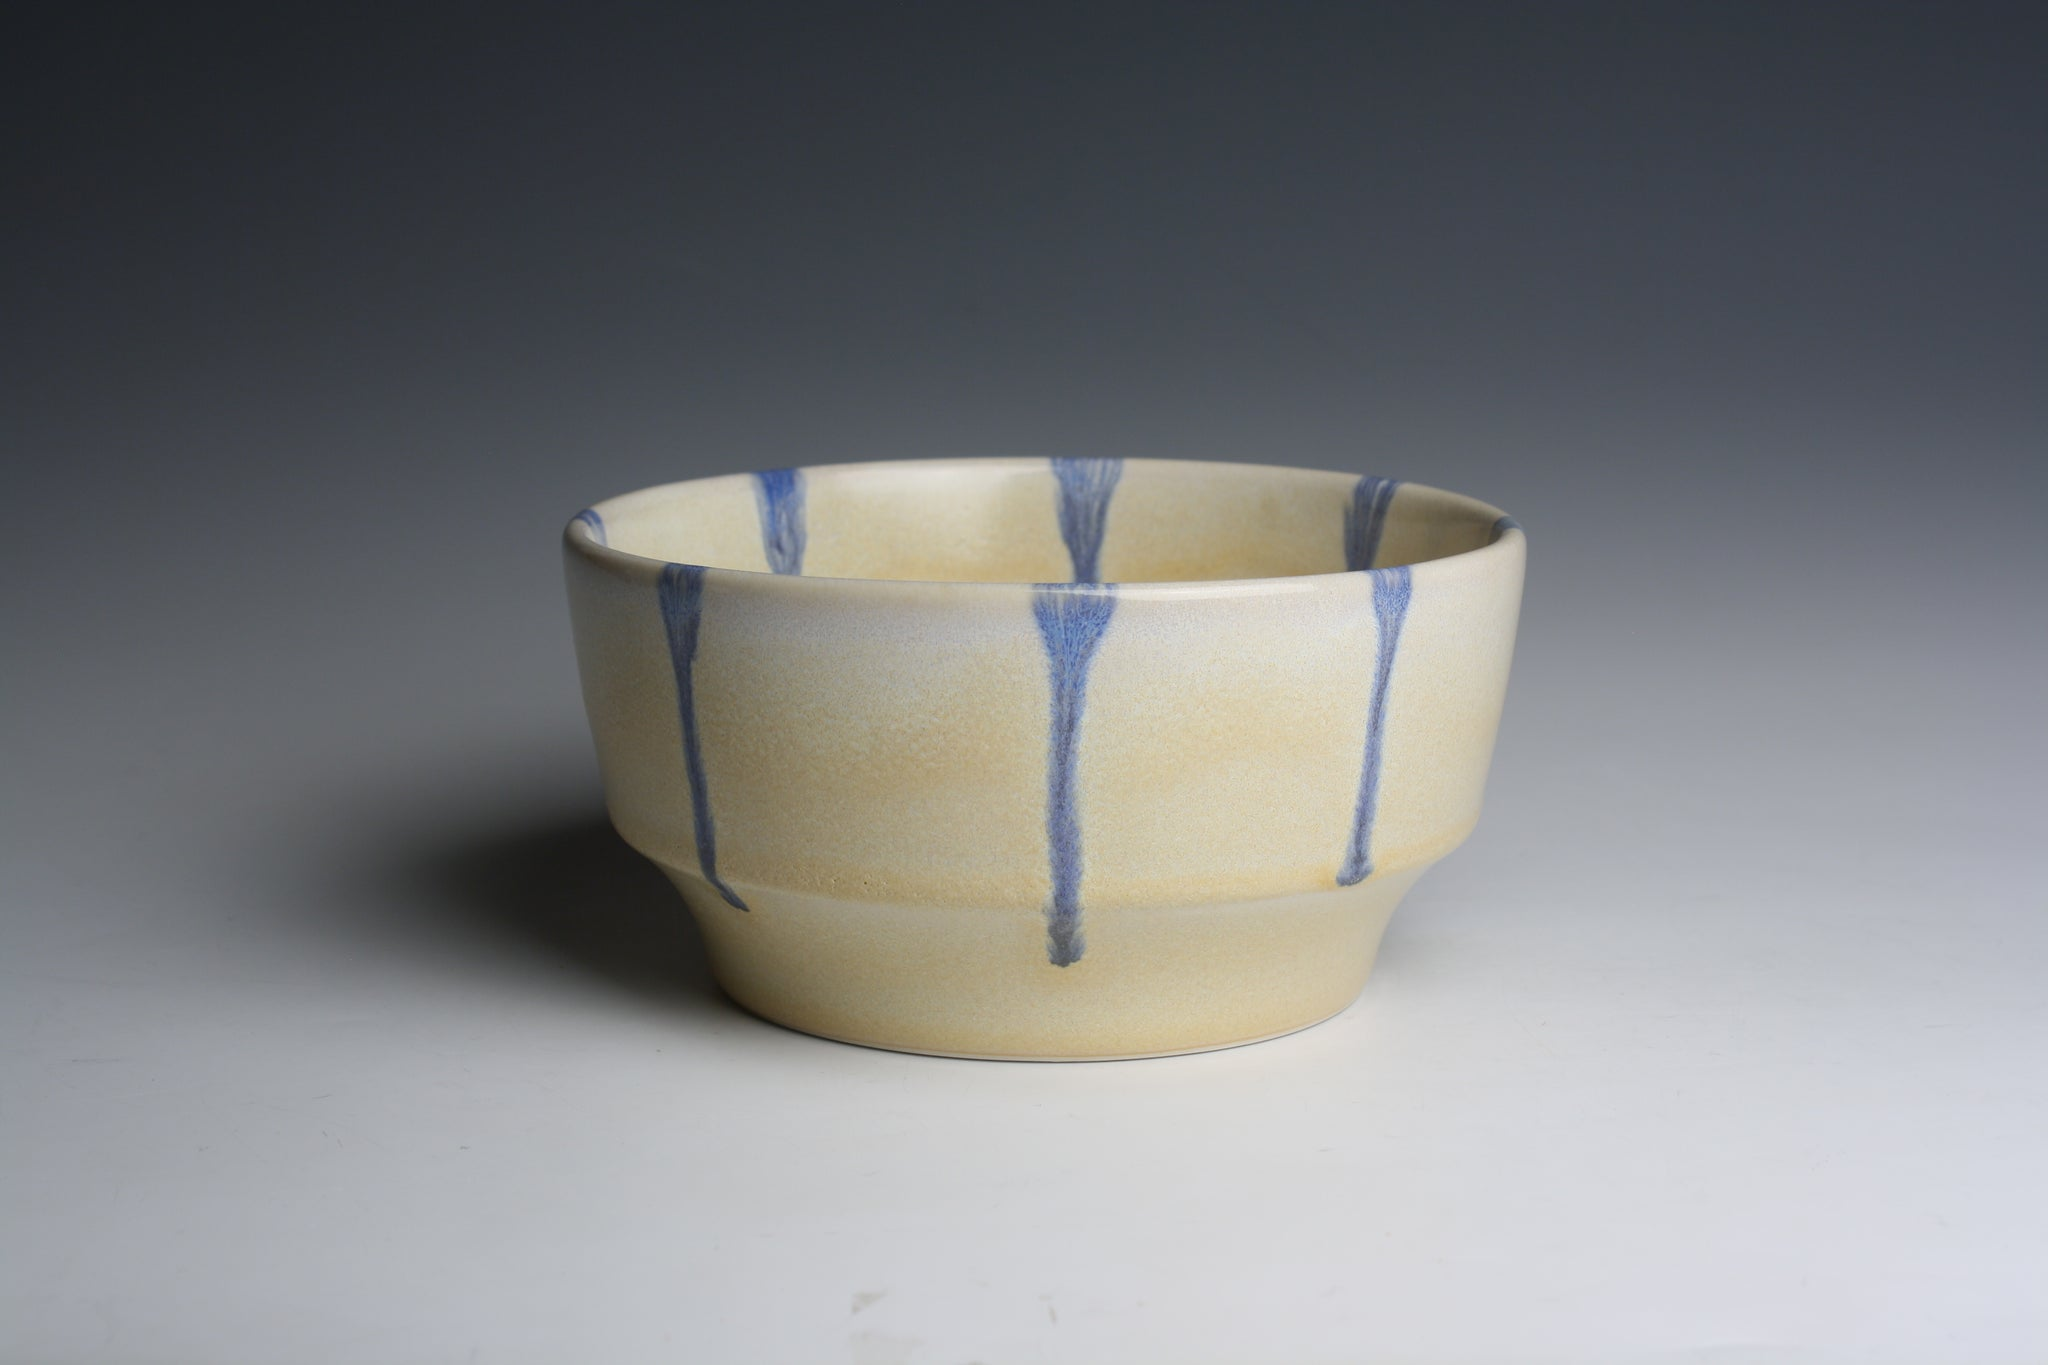 Bowl with Blue Drips